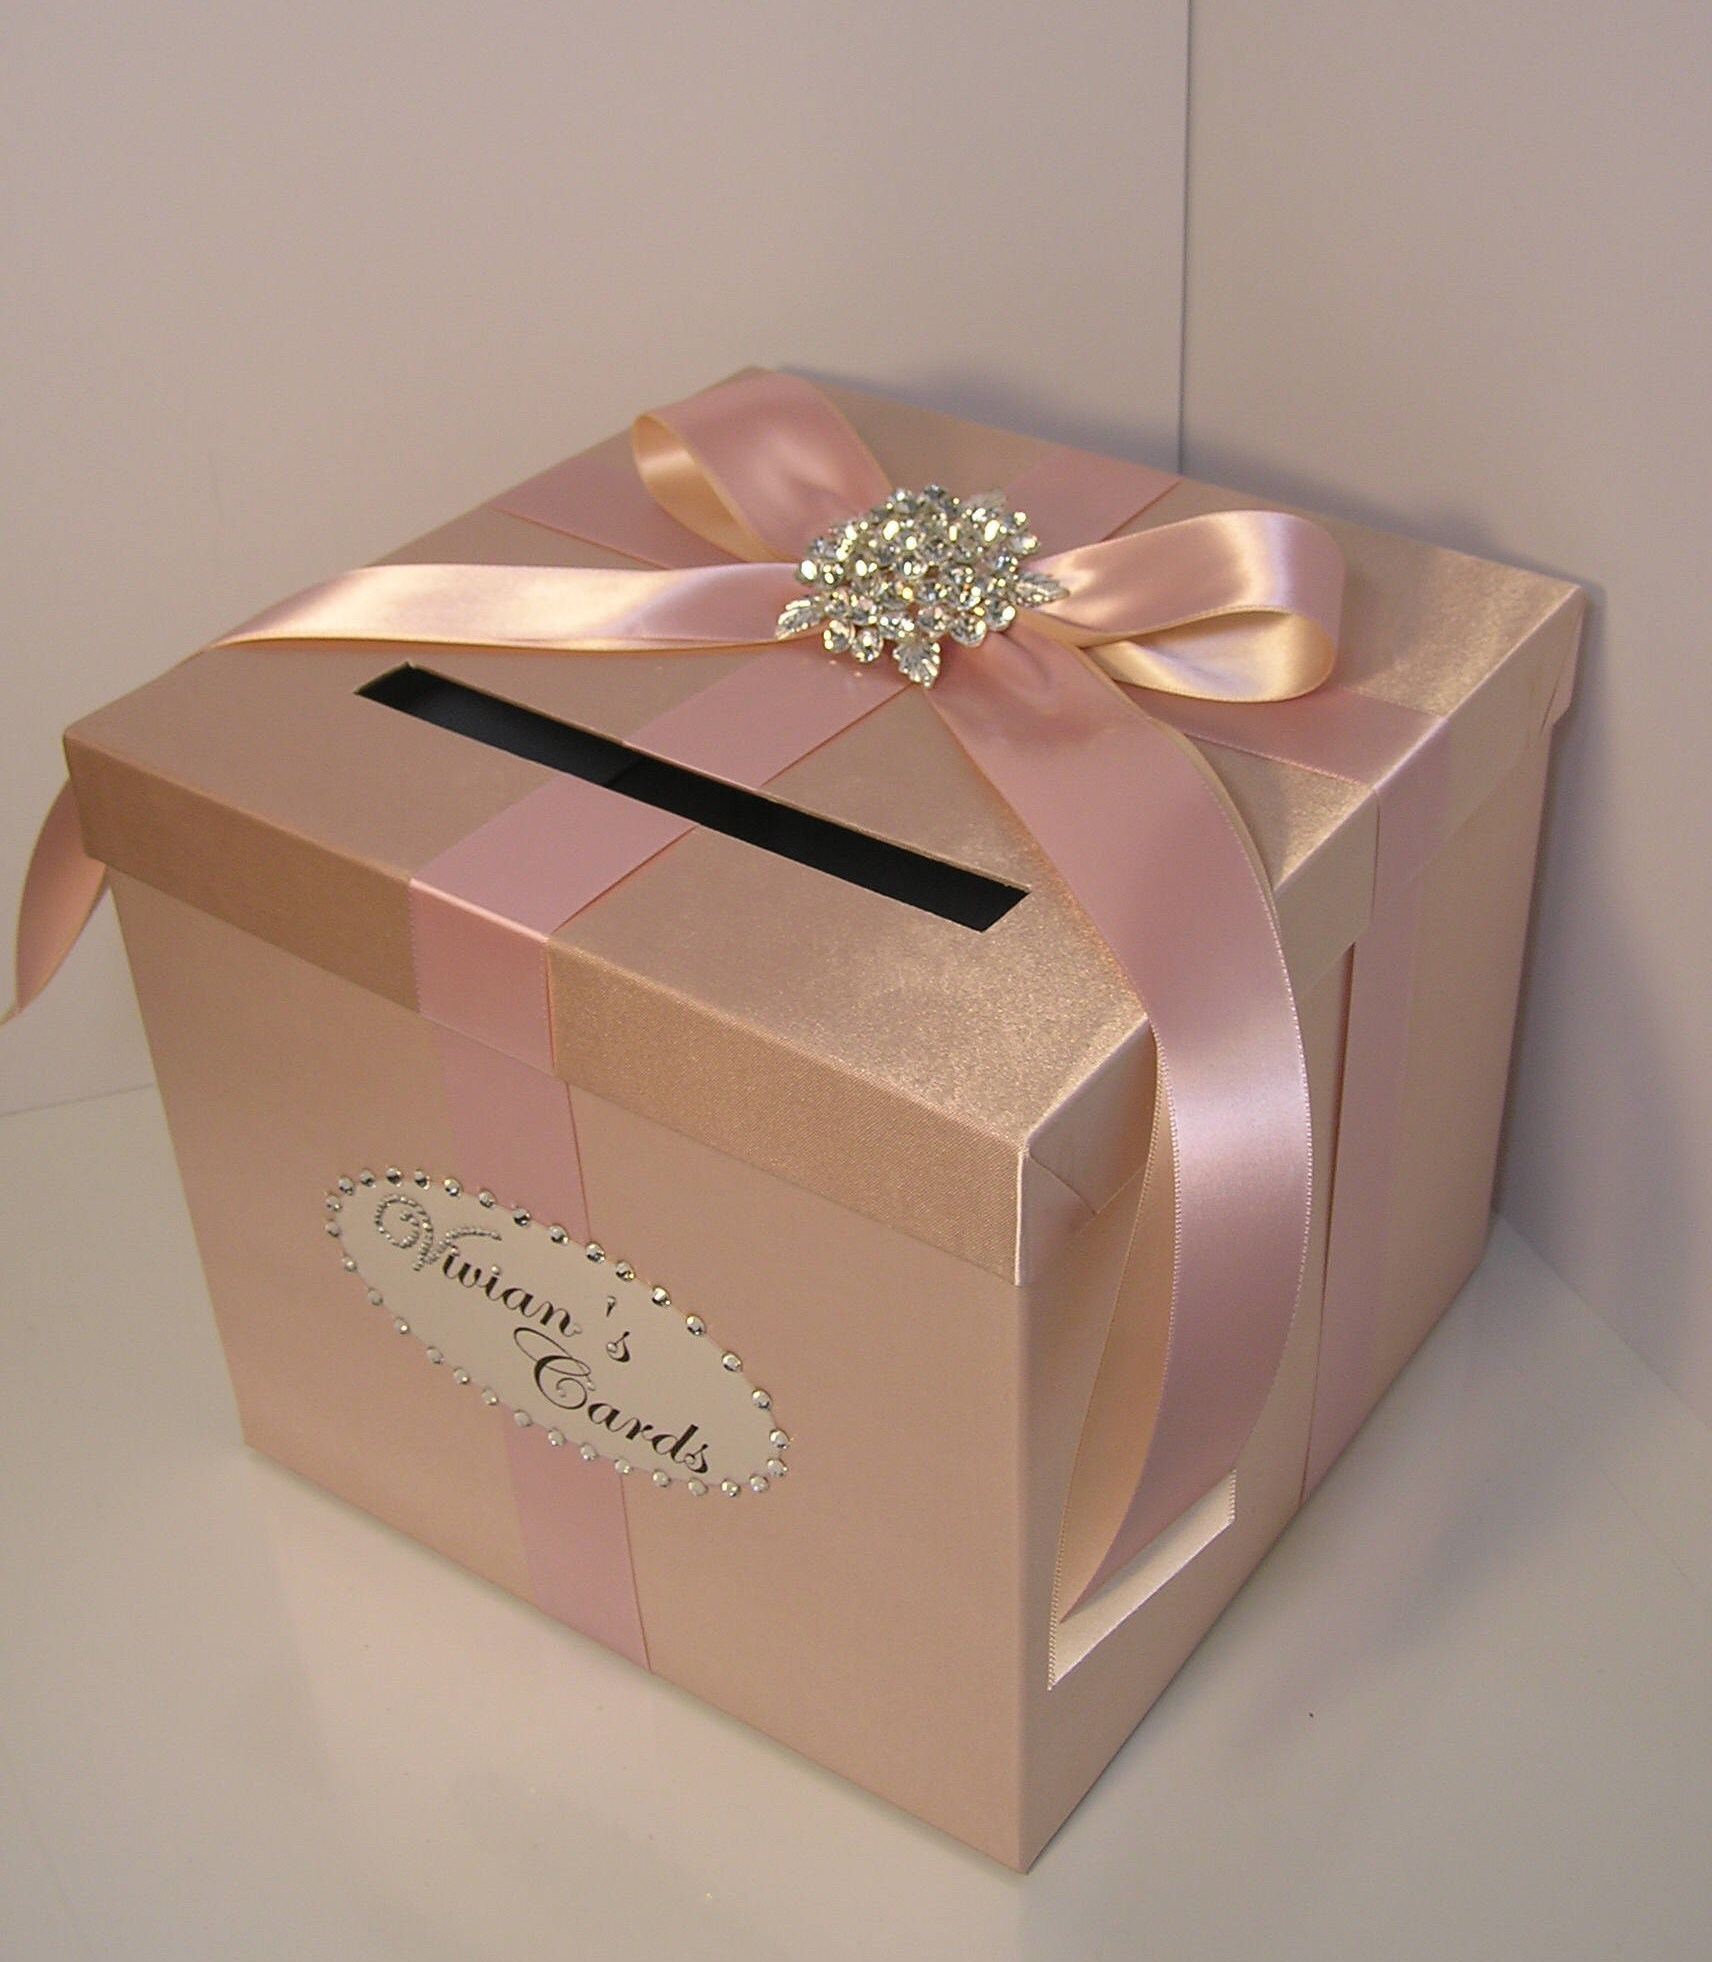 Wedding Gift Boxes: Wedding Card Box Rose Gold And Blush Pink/Nude Gift Card Box